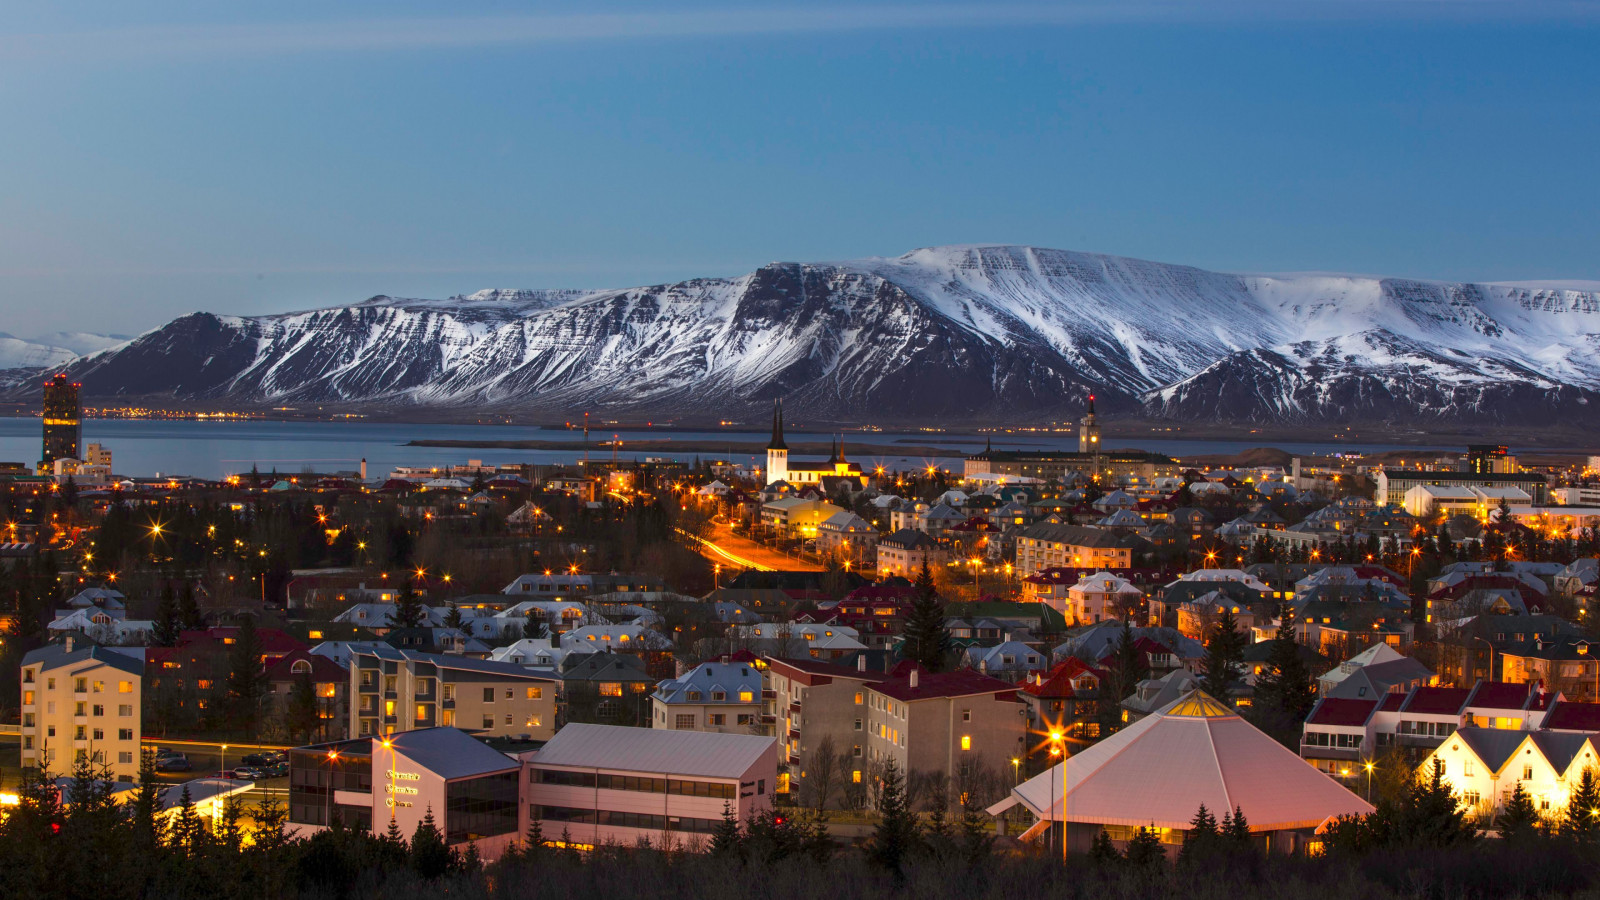 View over the Reykjavik city | 1600x900 wallpaper